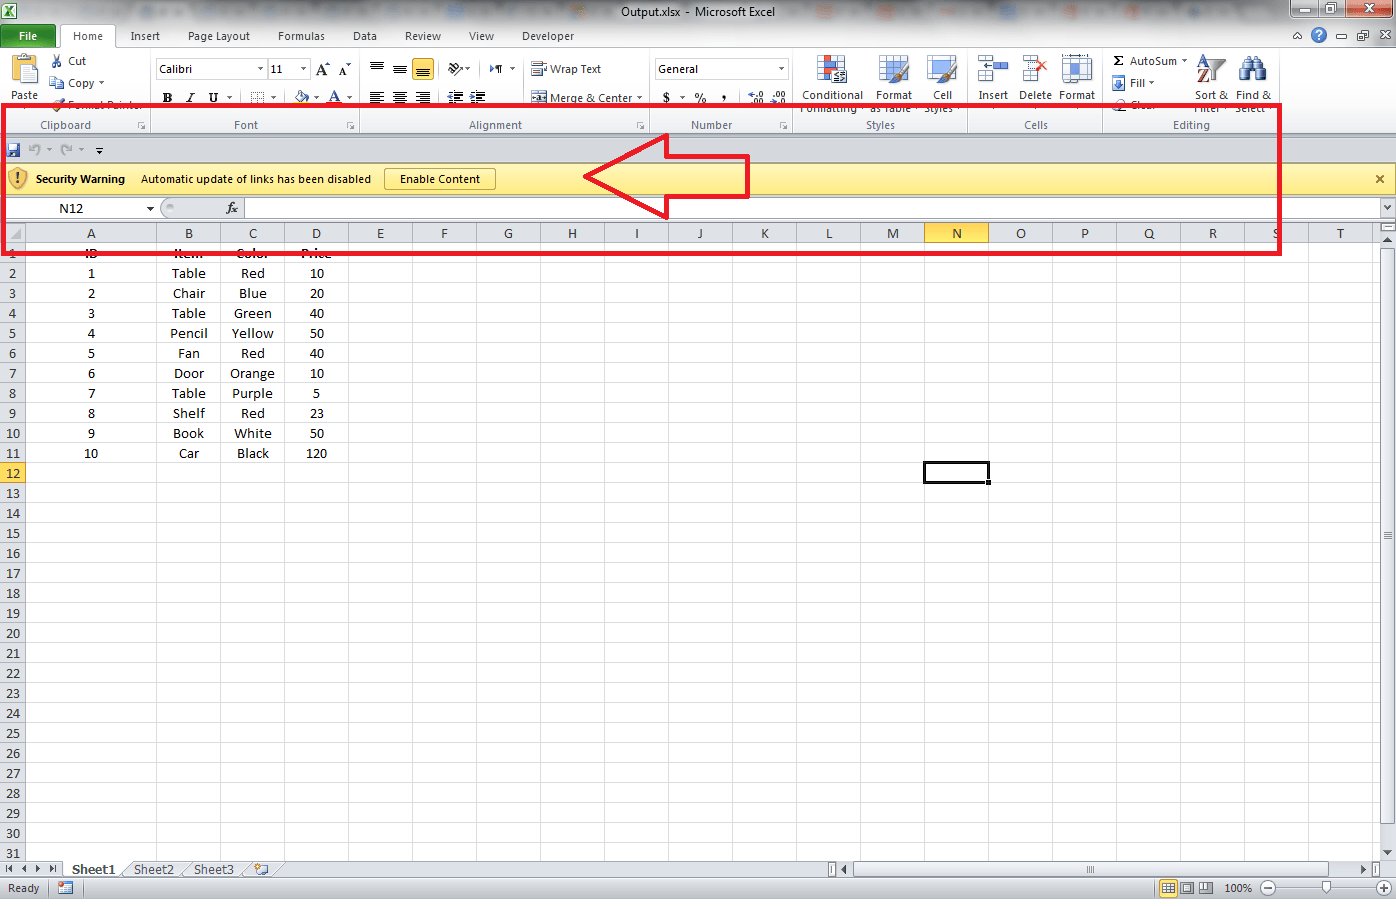 Workbooks open excel workbook vba : Security Warning: Automatic Update of Links Has Been Disabled ...